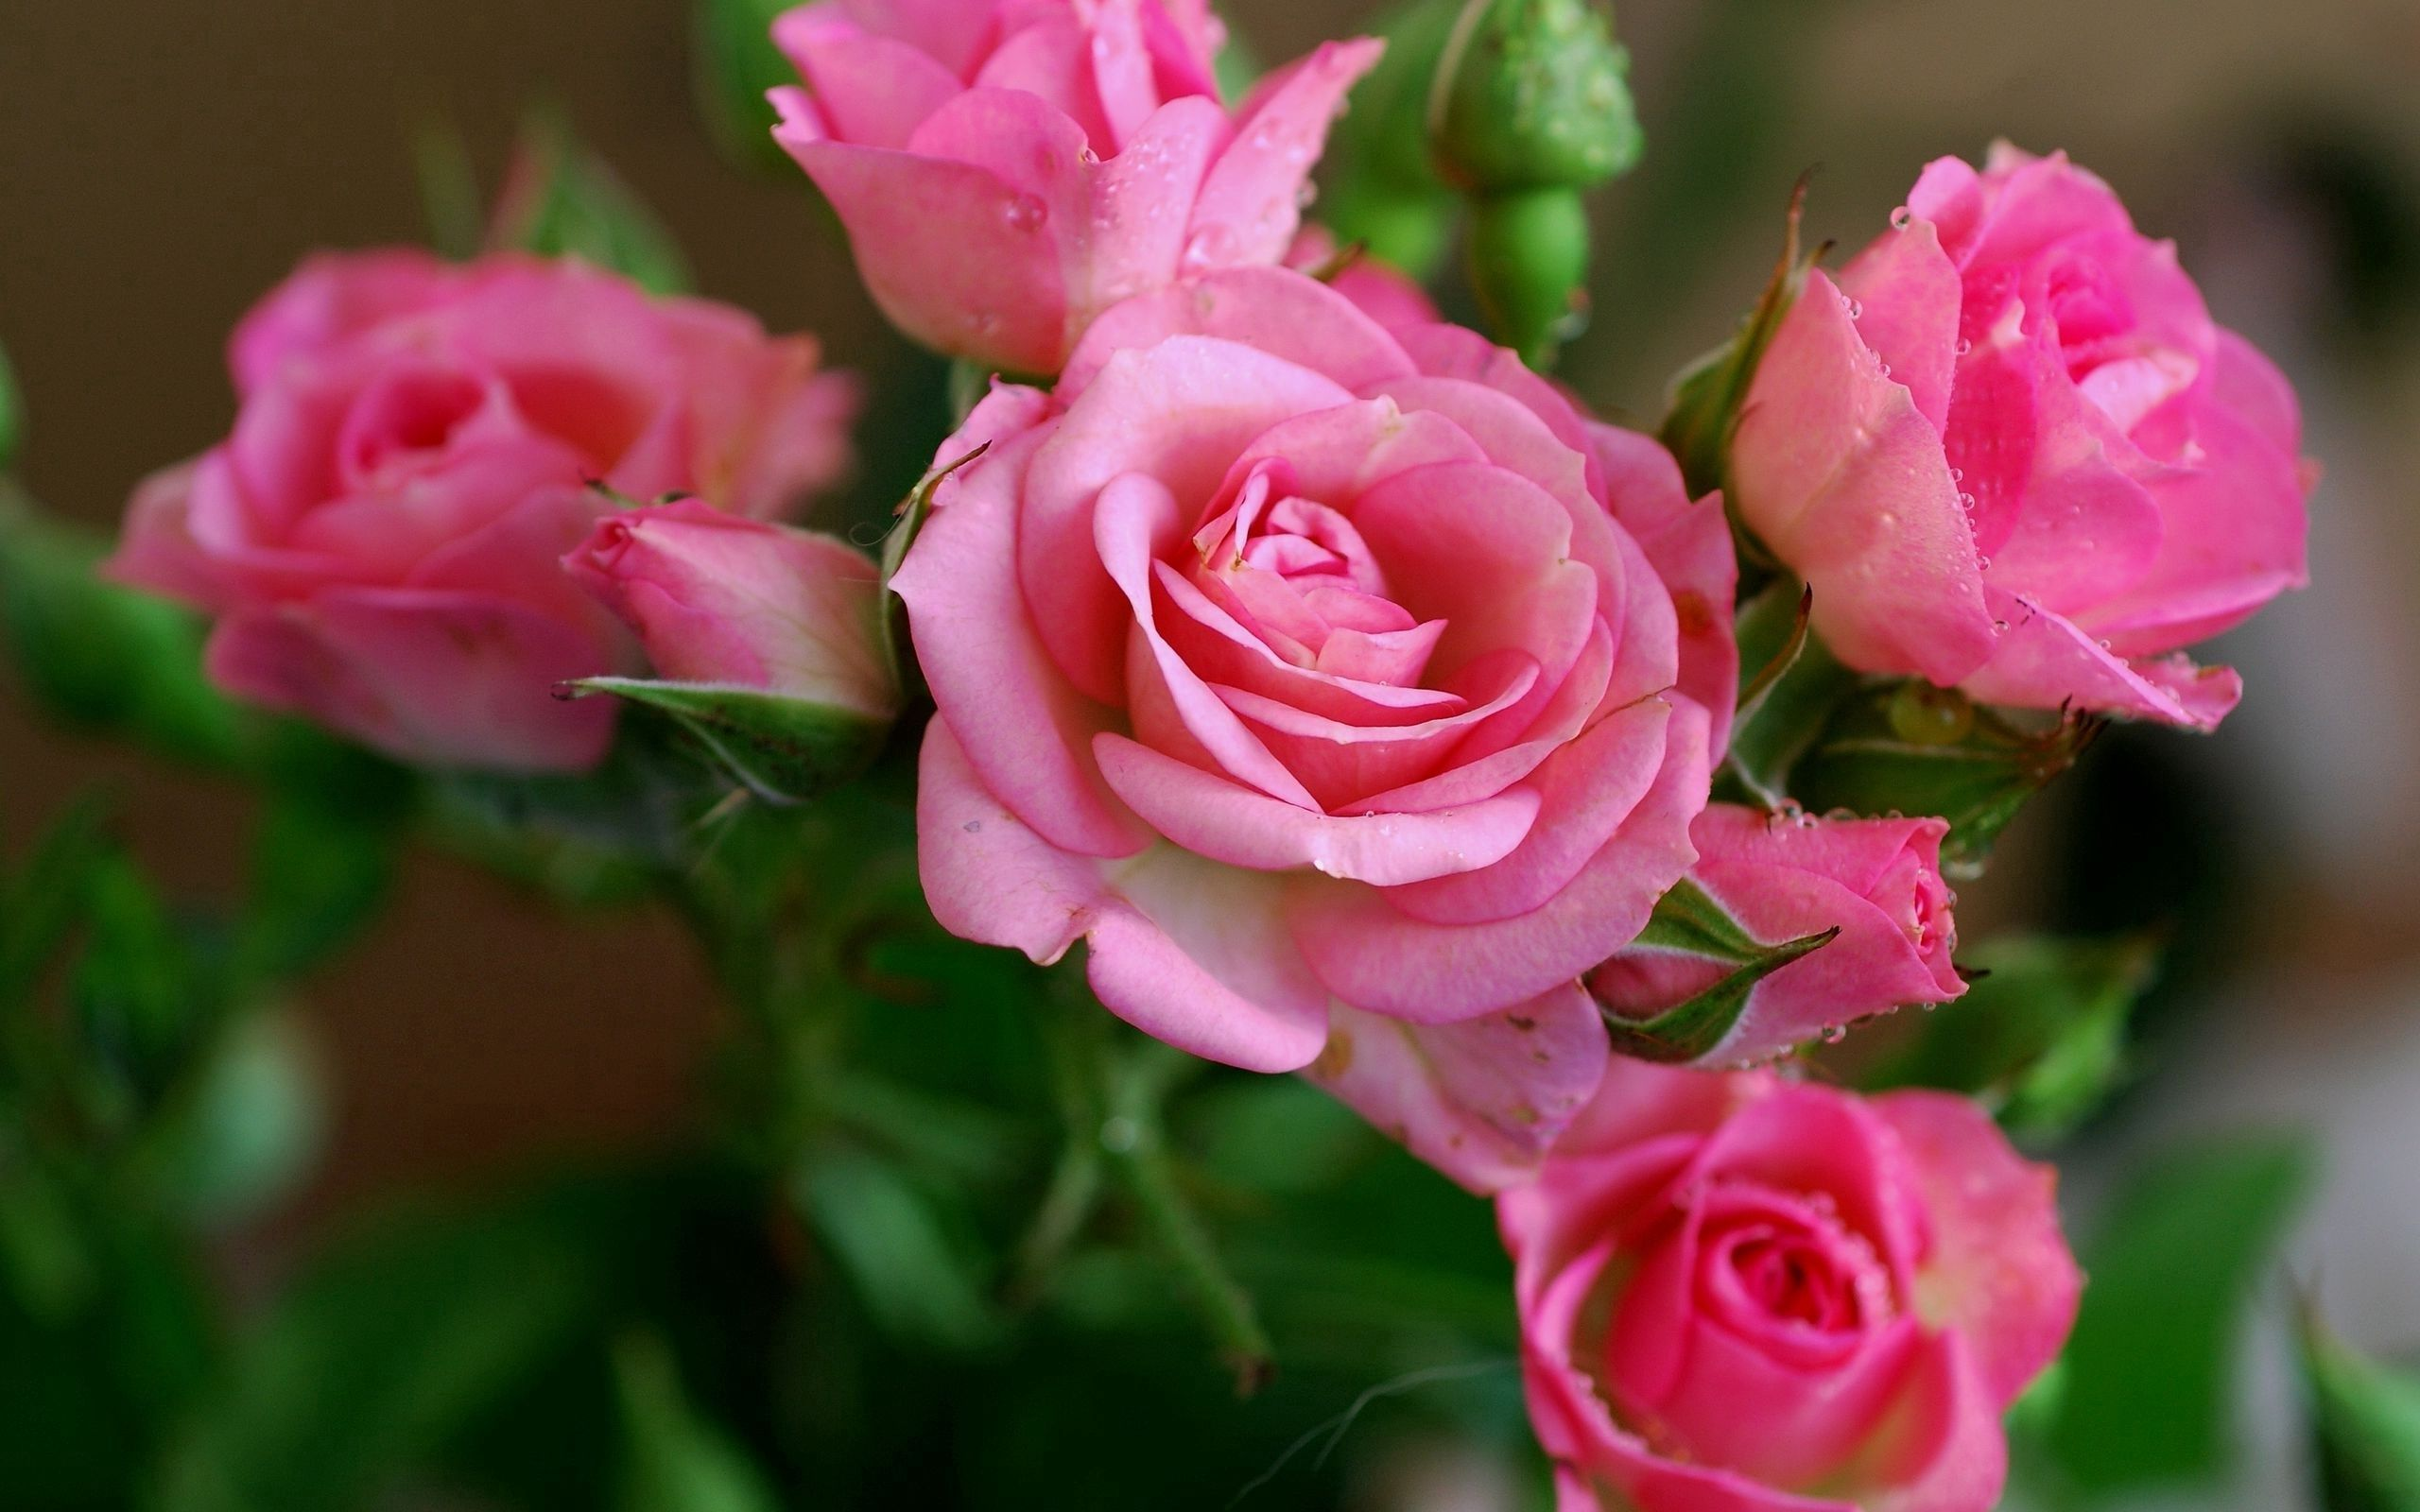 152952 download wallpaper Flowers, Buds, Drops, Dew, Roses screensavers and pictures for free